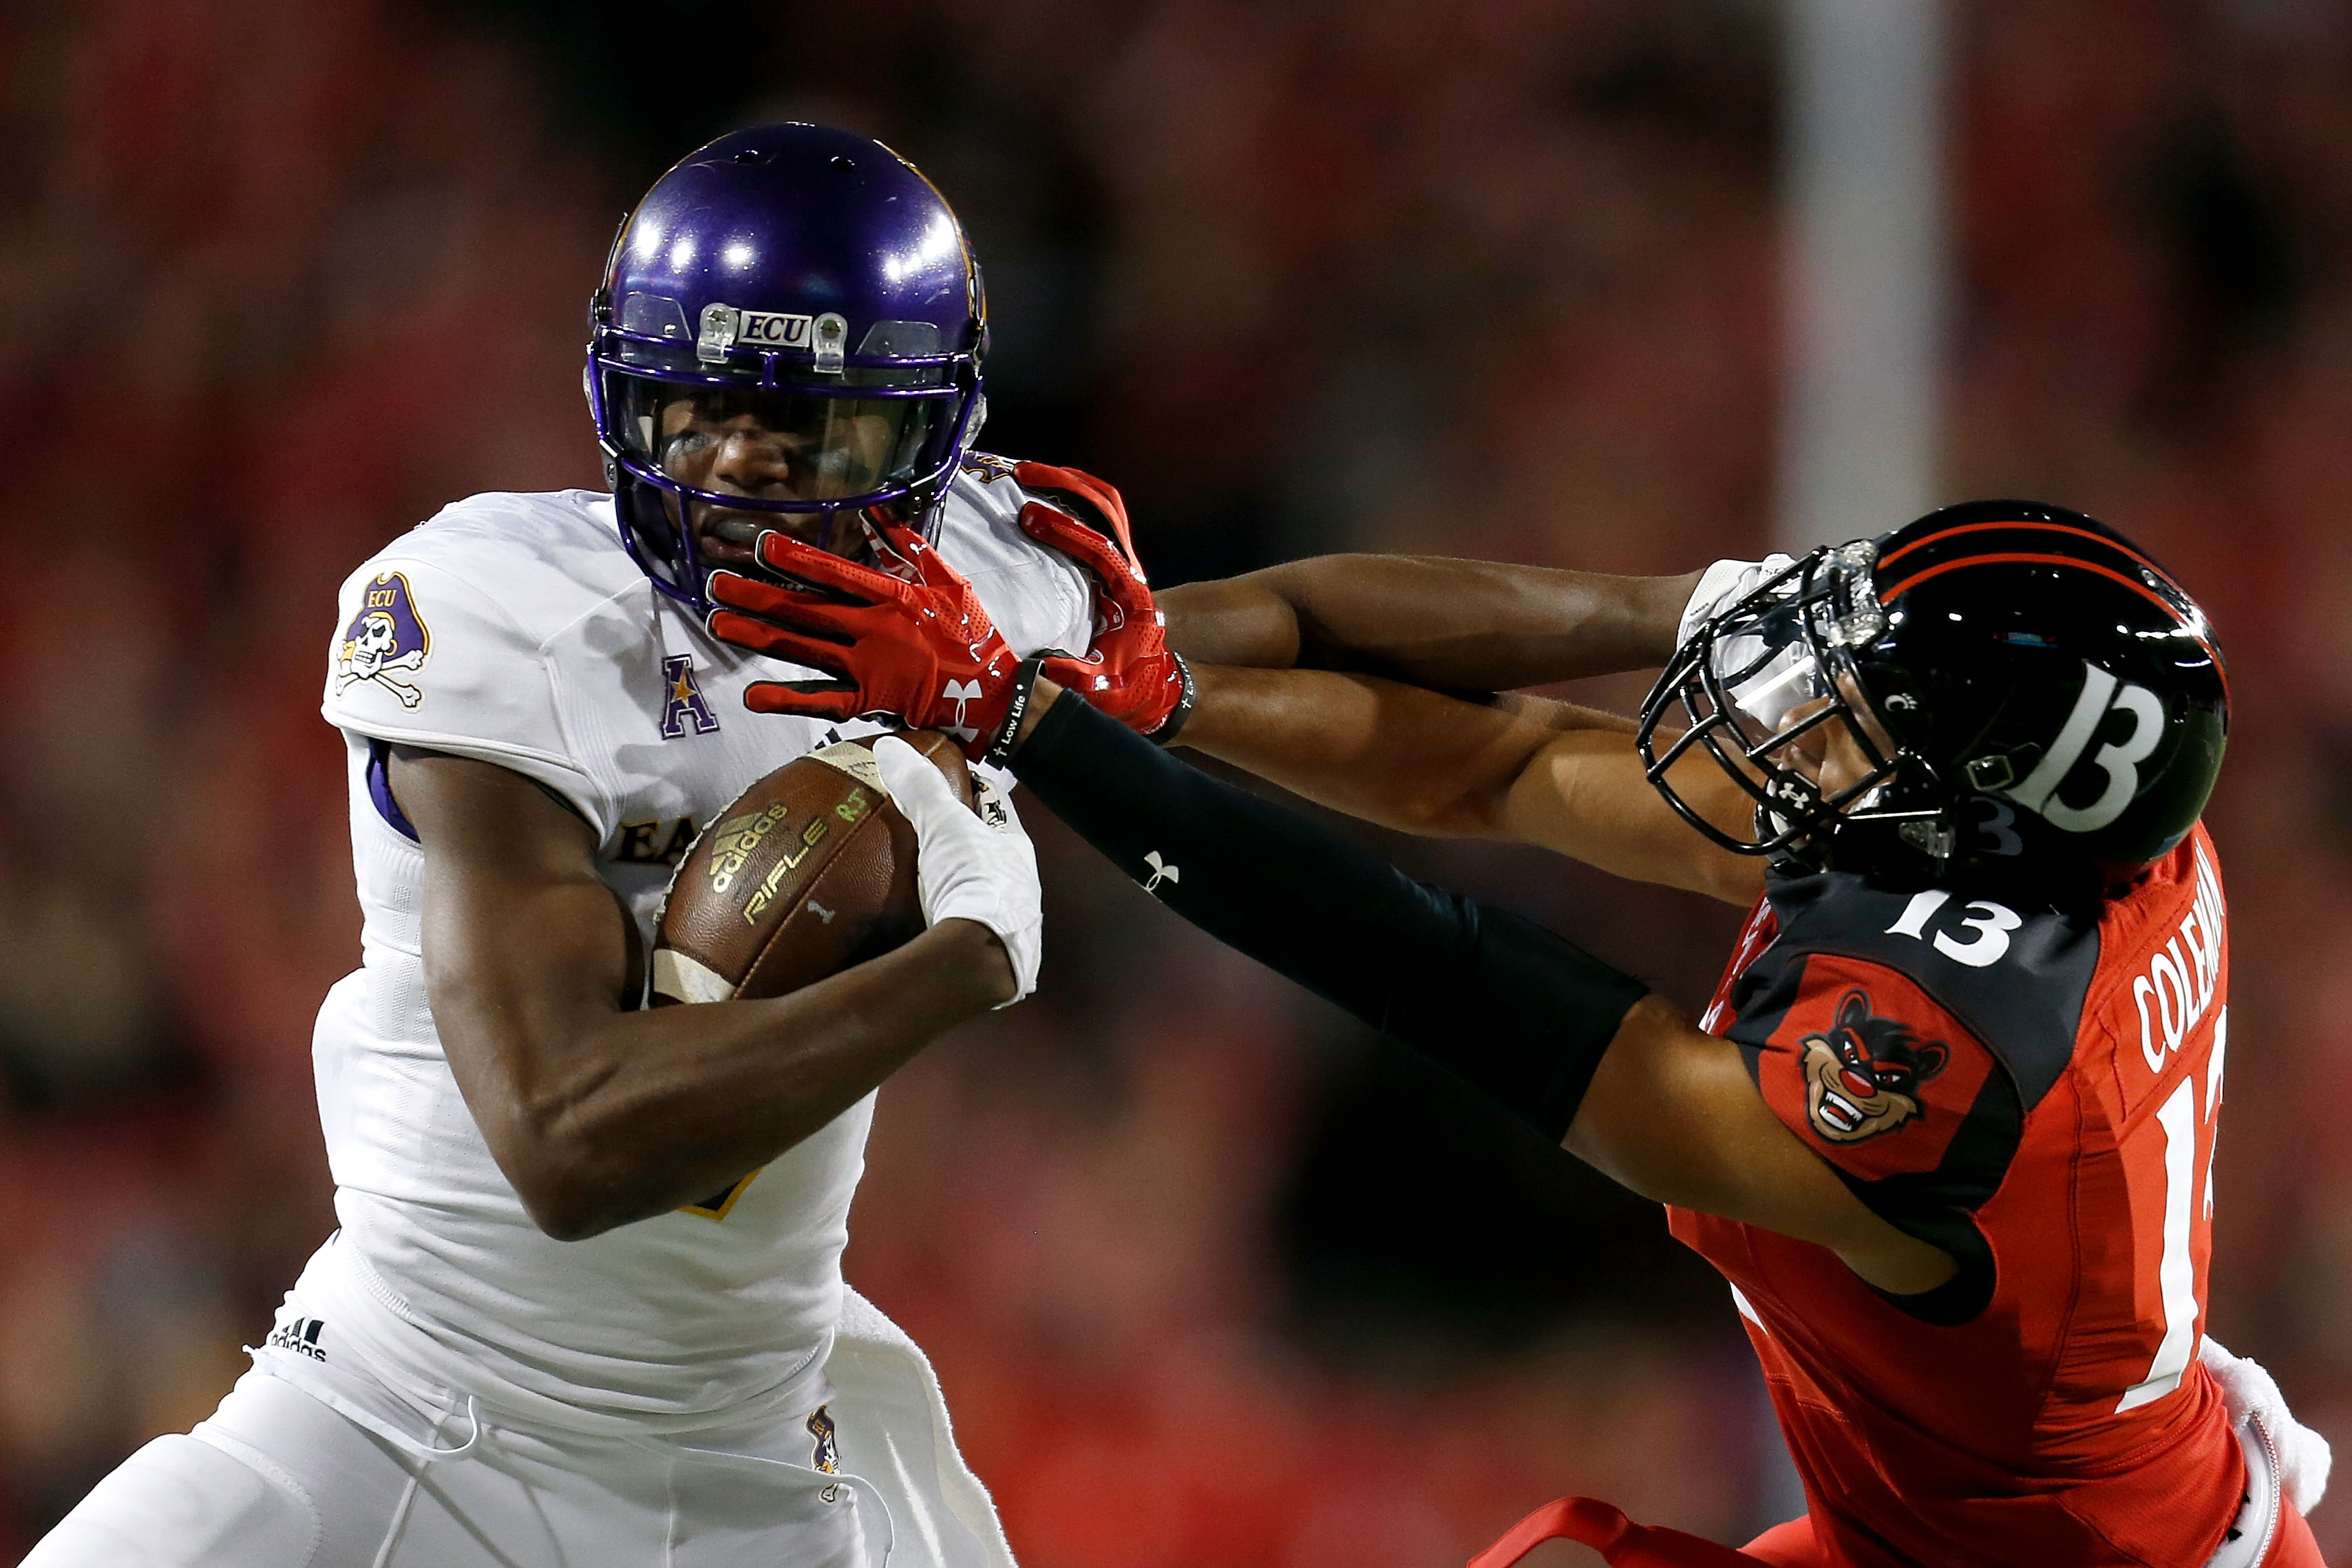 East Carolina's Zay Jones, left, set an NCAA record with 158 catches last season. (Getty Images)